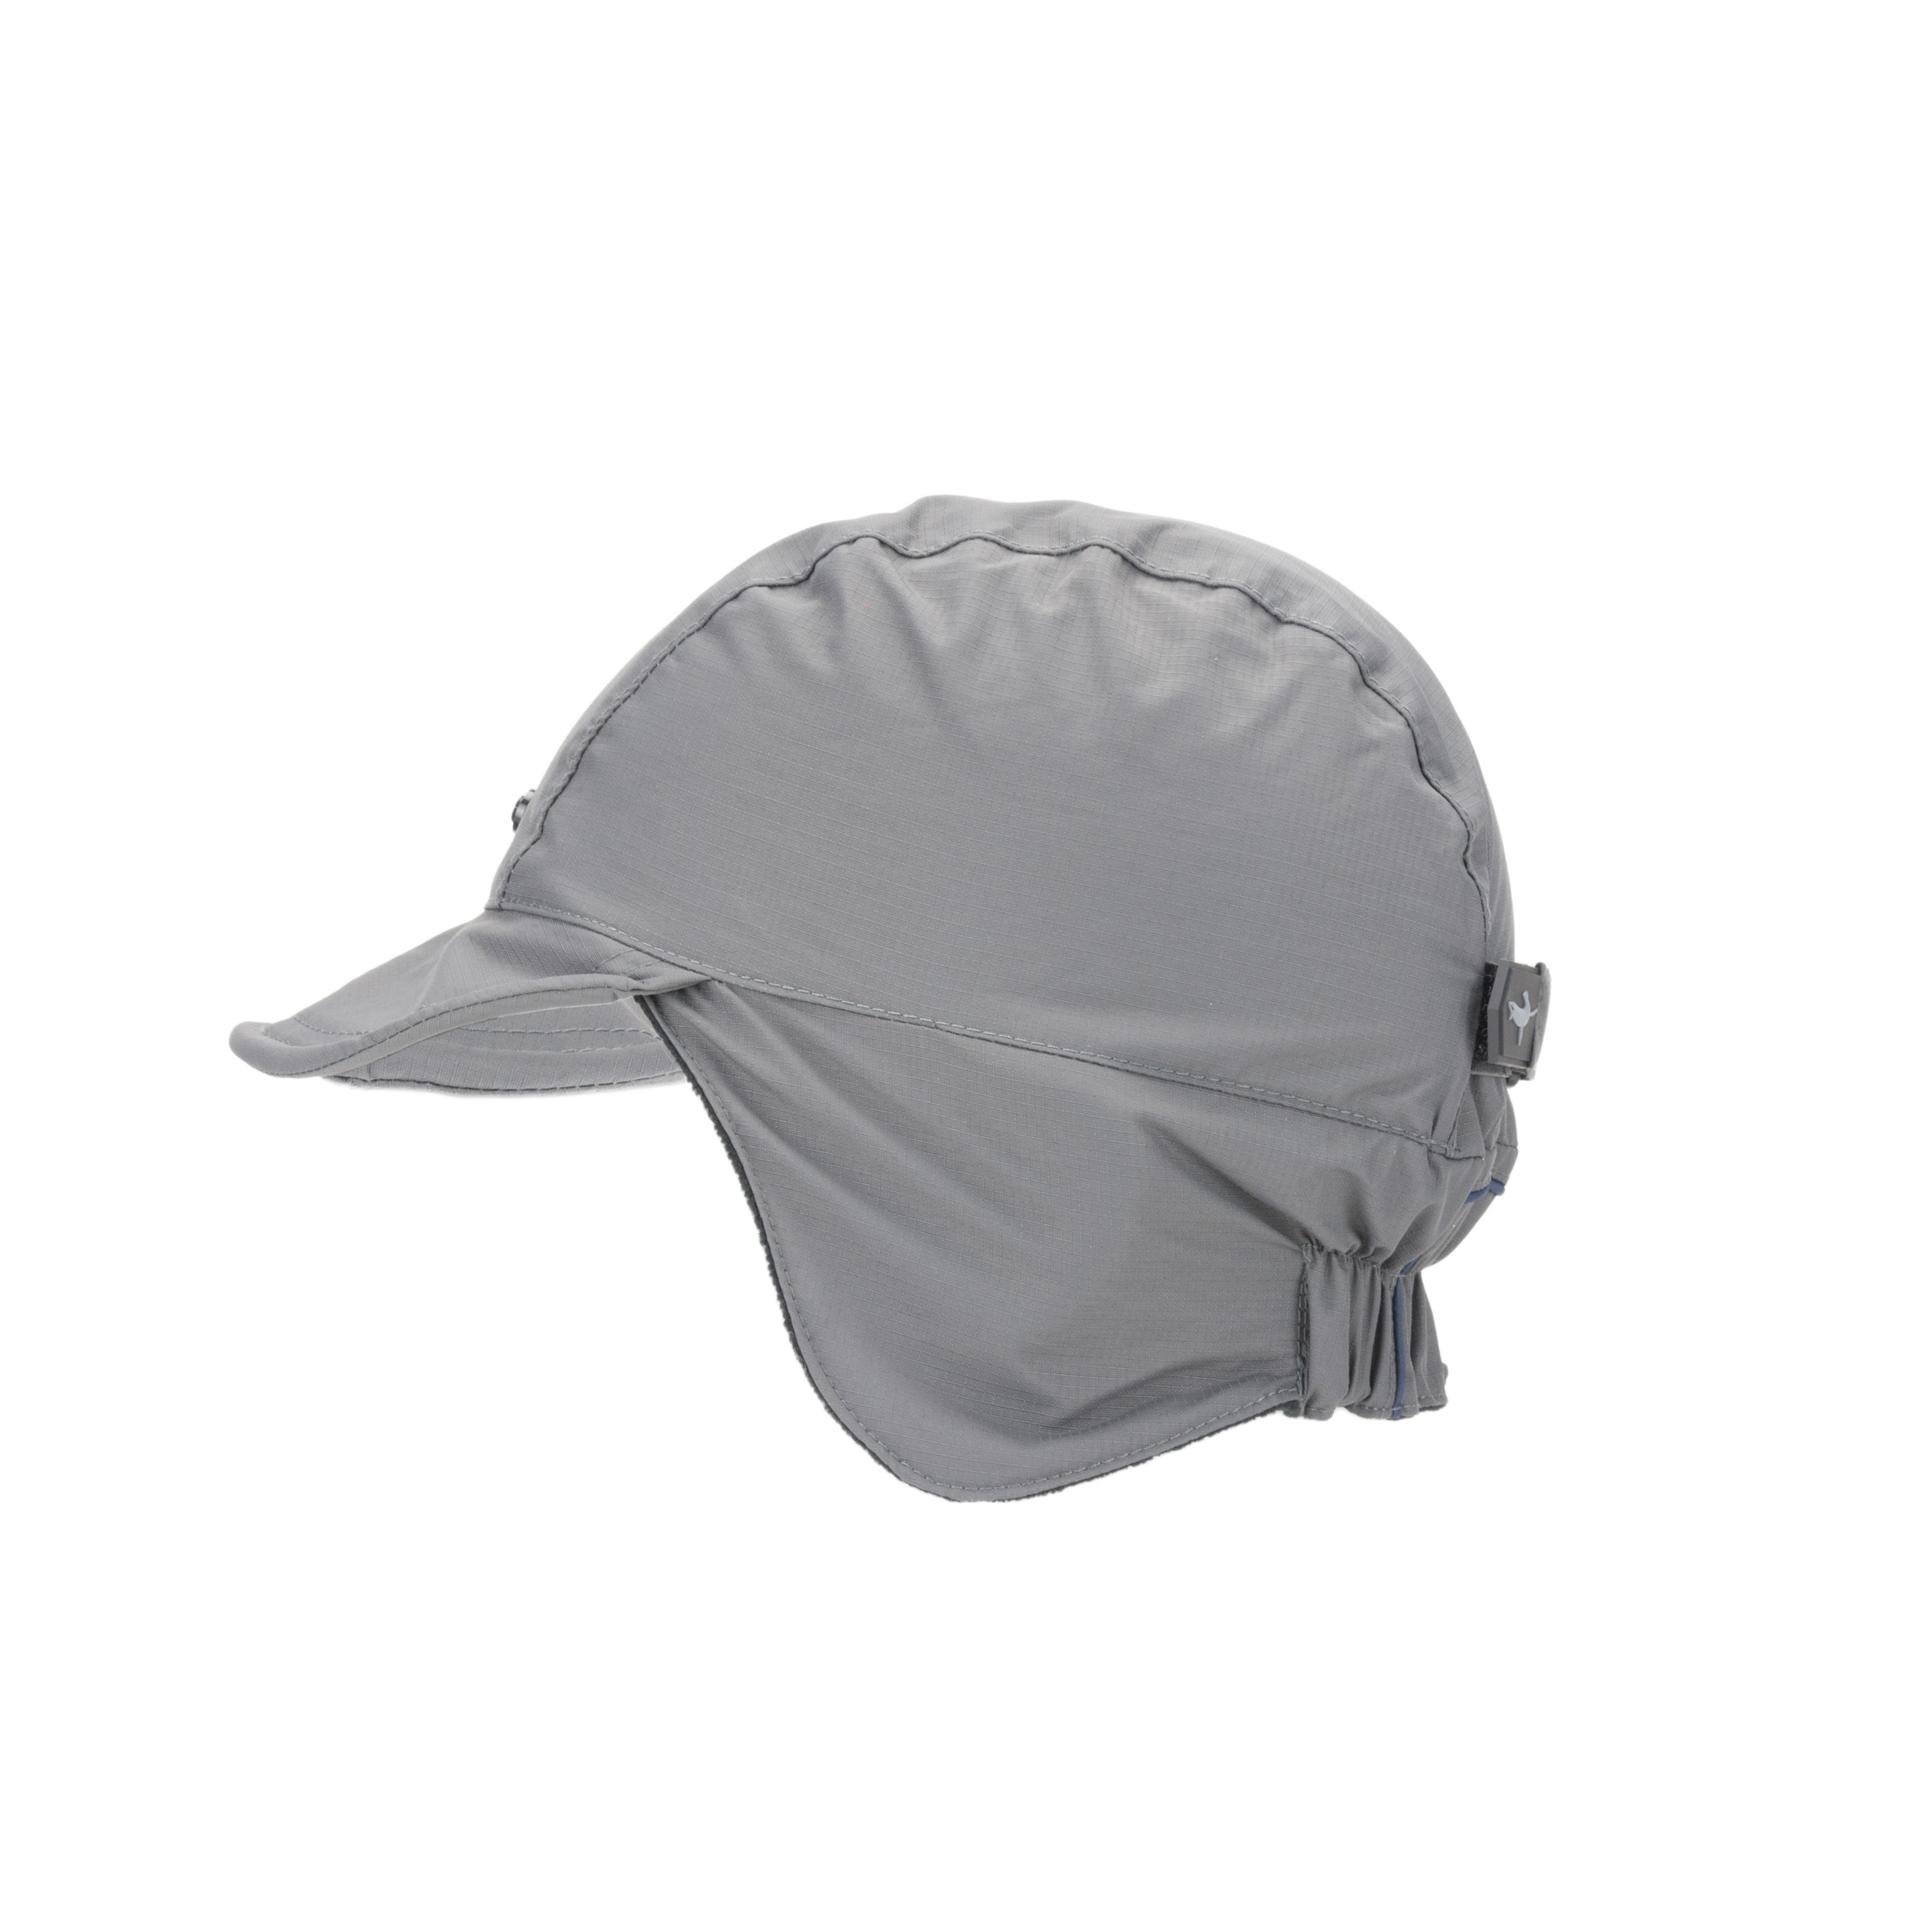 Afbeelding Sealskinz Casual muts waterdicht voor Heren Grijs  / Waterproof Extreme Cold Weather Hat Grey